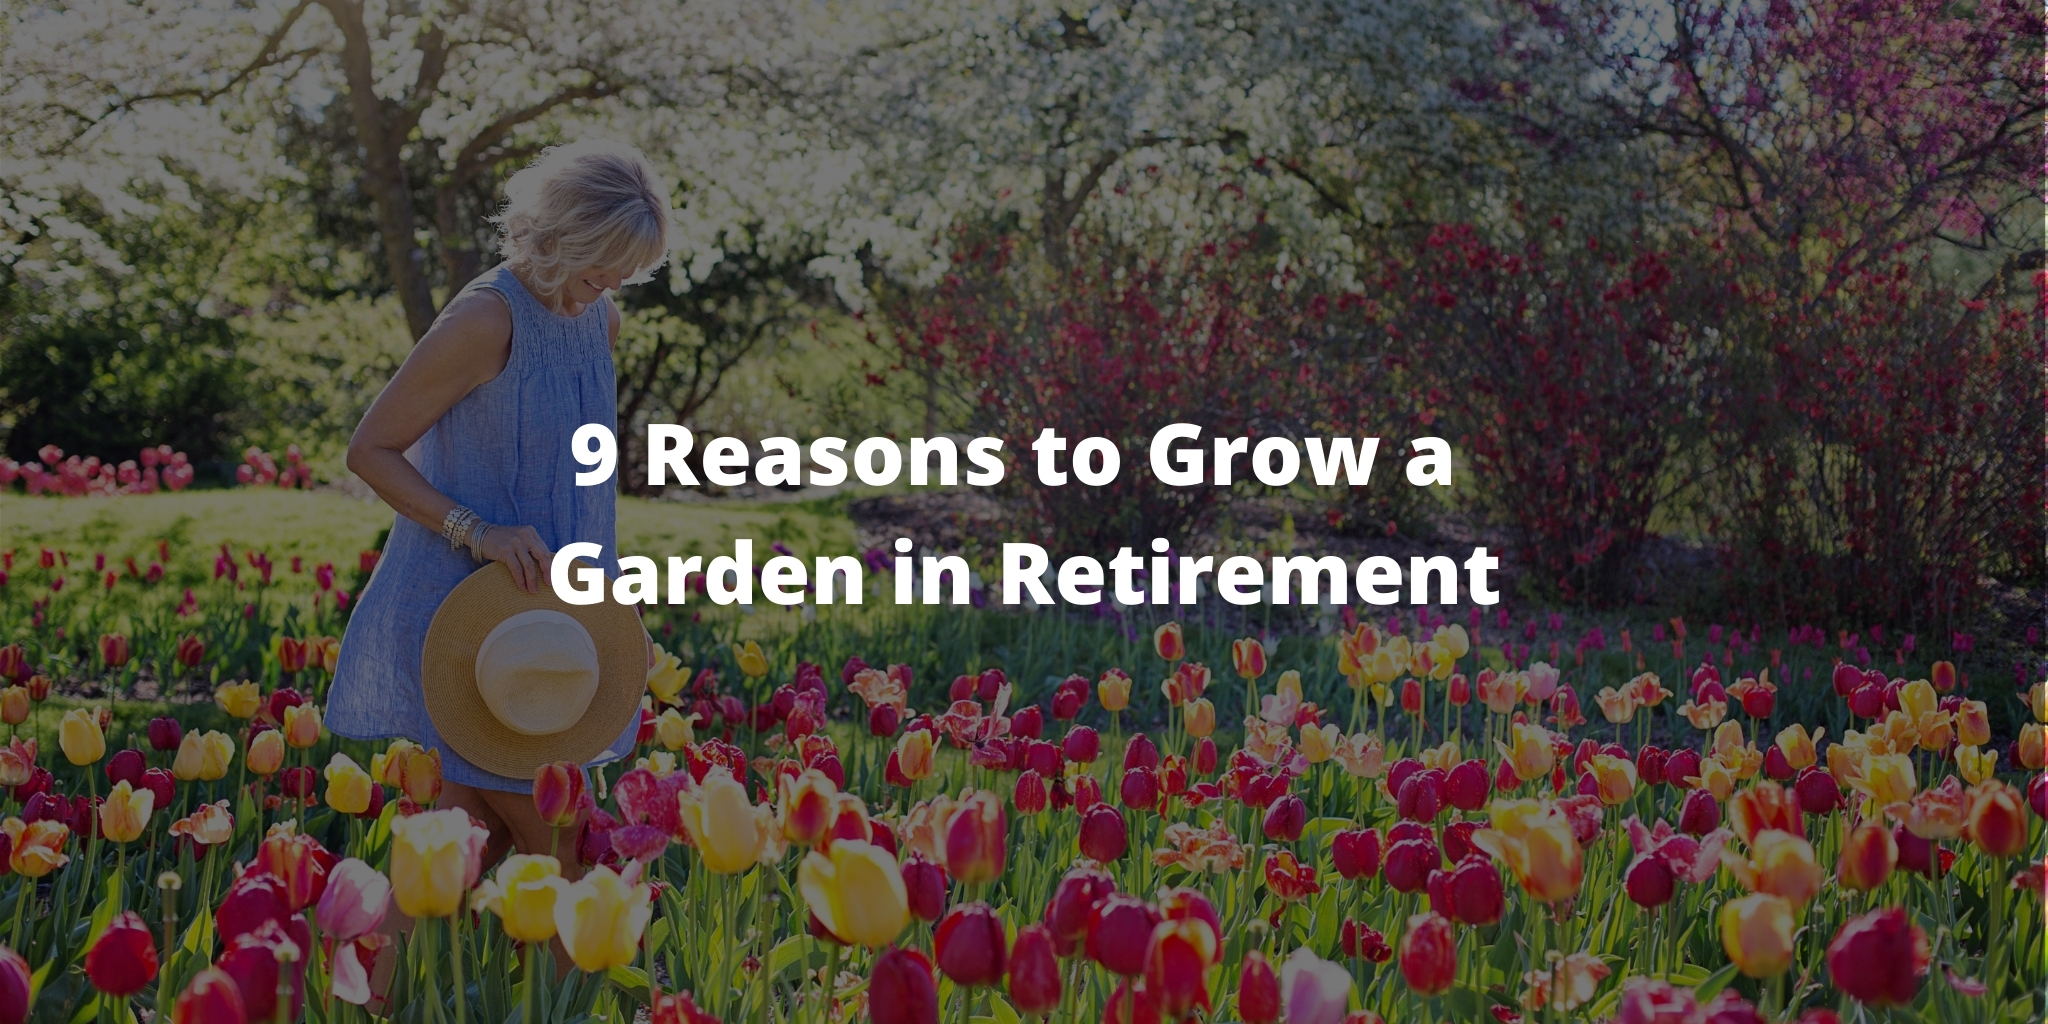 9 Reasons to Grow a Garden in Retirement